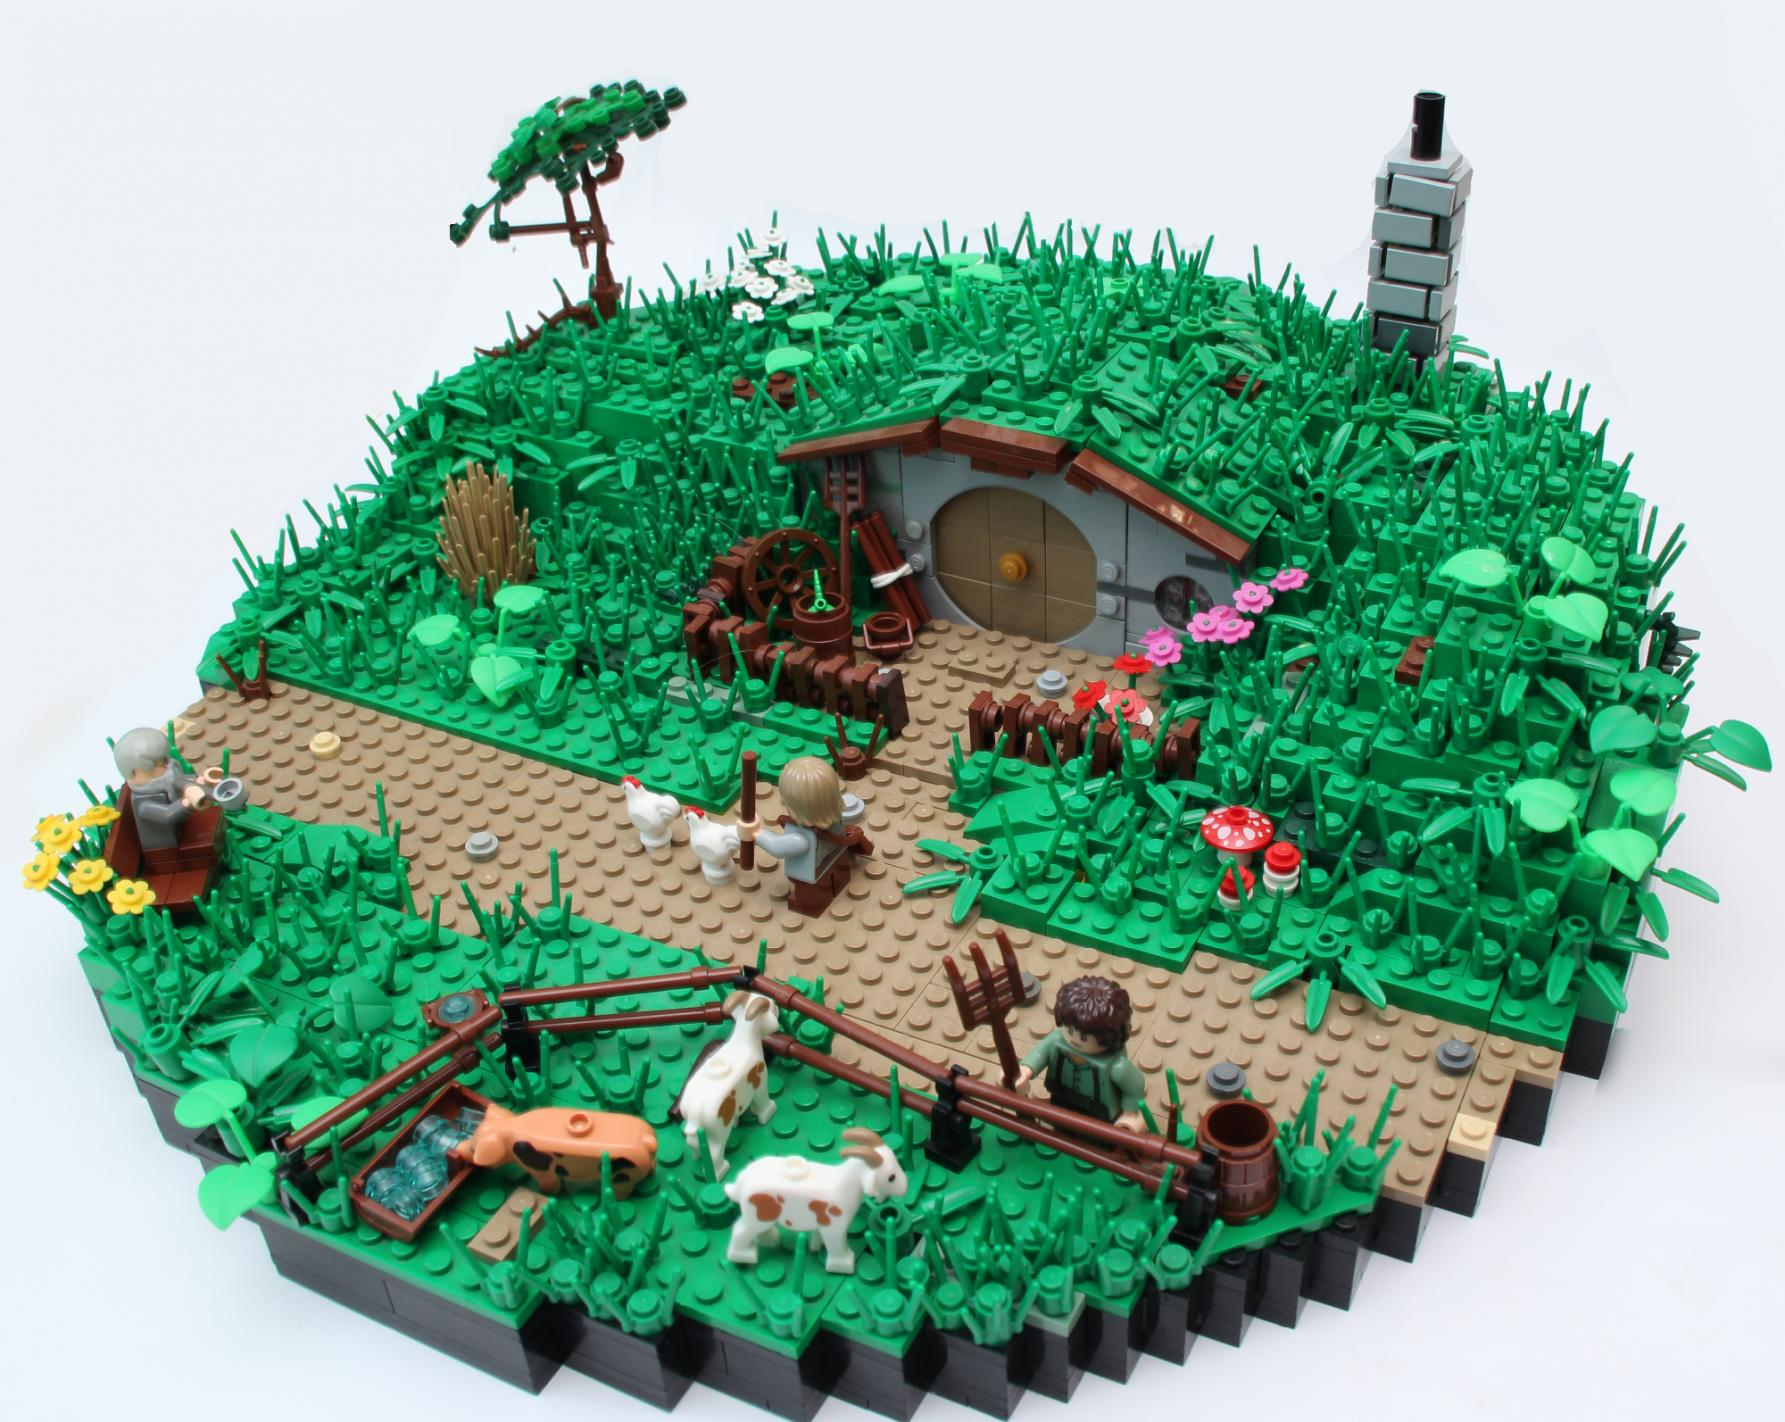 Hobbit Hole LEGO Build Goes Far Beyond The Realm Of The Block